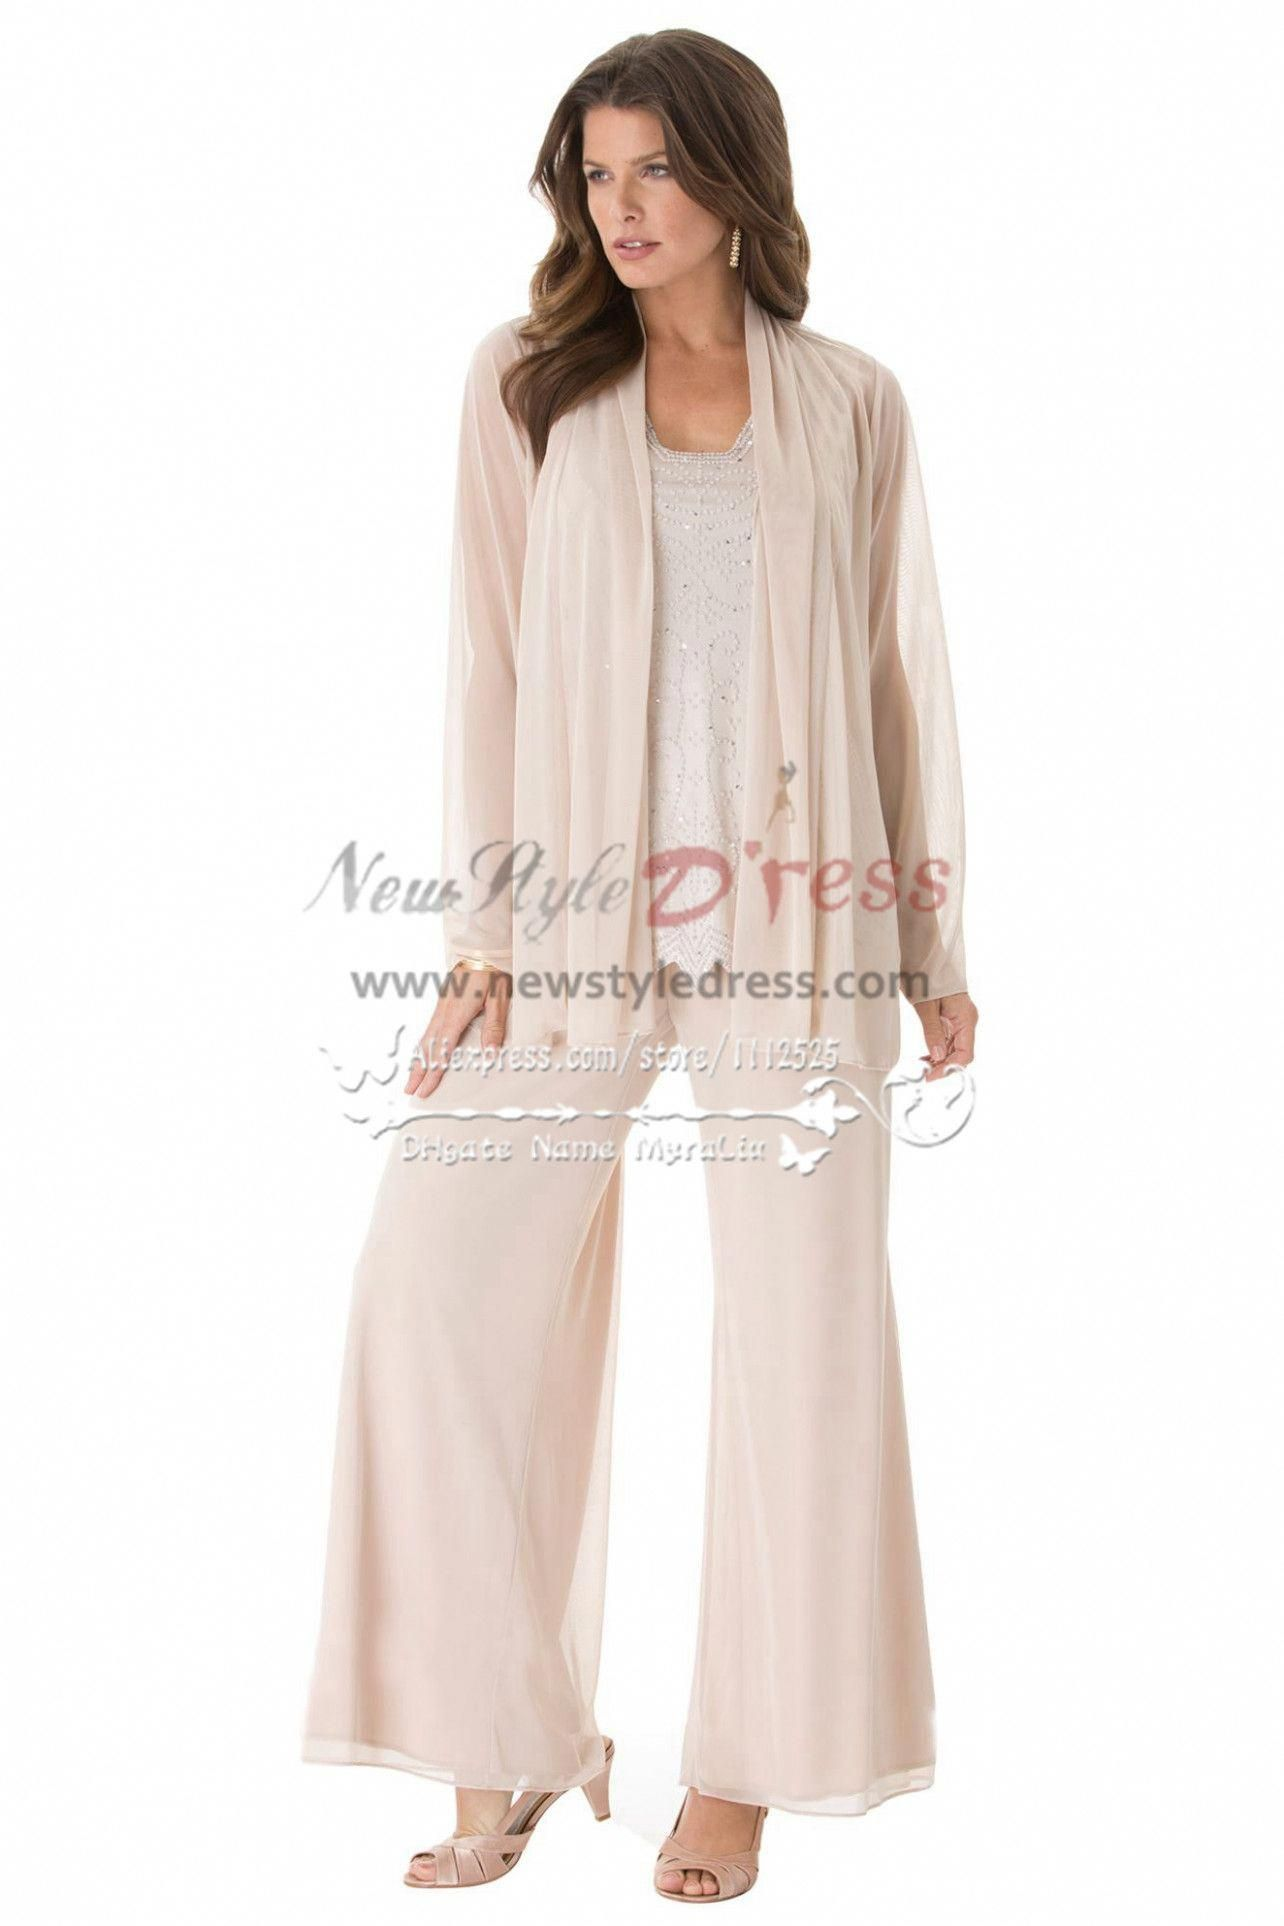 740c8136e445 Plus Size Mother Of The Bride Dresses And Pantsuits - raveitsafe